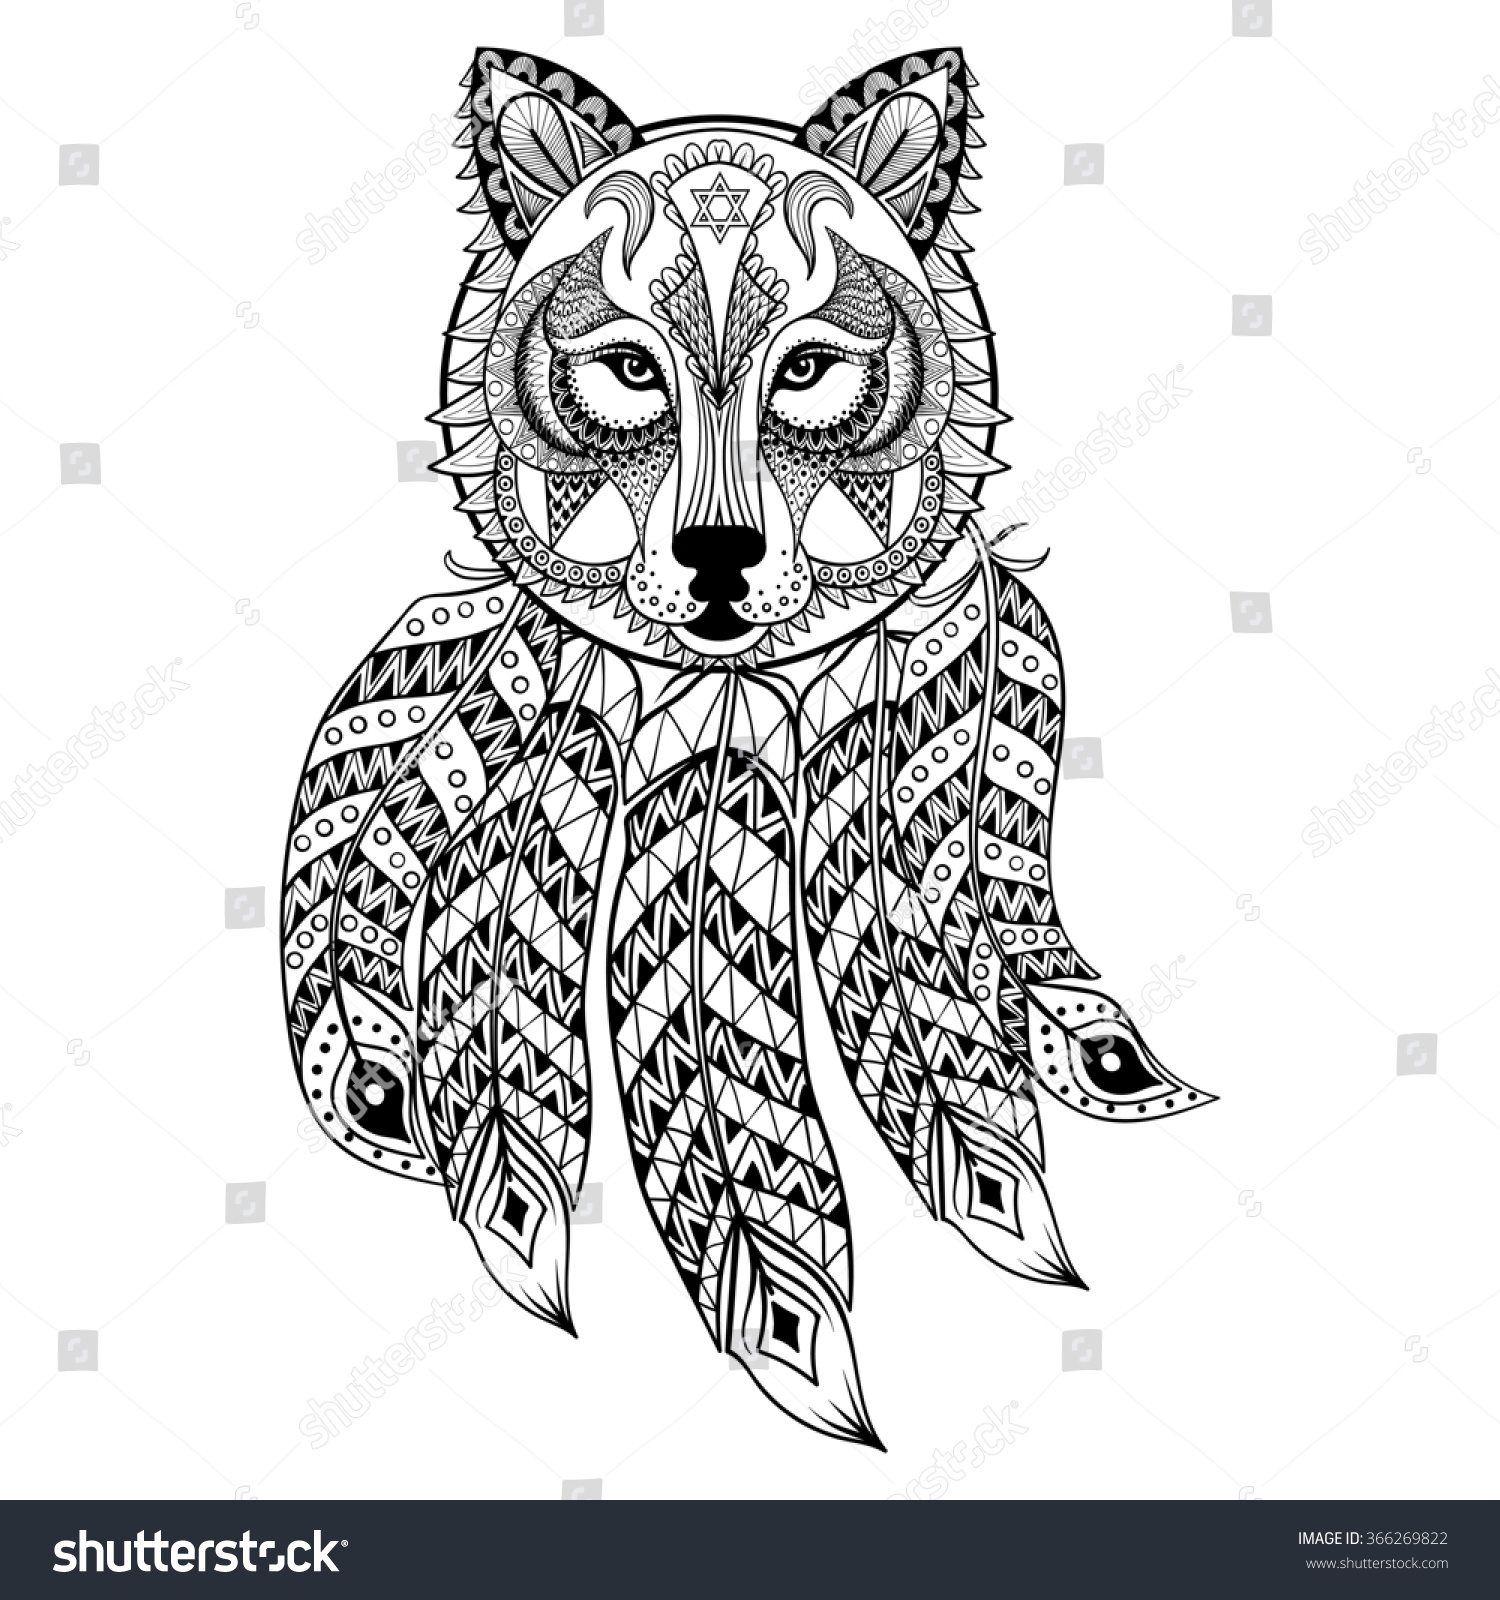 Coloring pages for adults wolf - Ornamental Wolf With Dreamcatcher Ethnic Zentangled Mascot Amulet Mask Of Werewolf Patterned